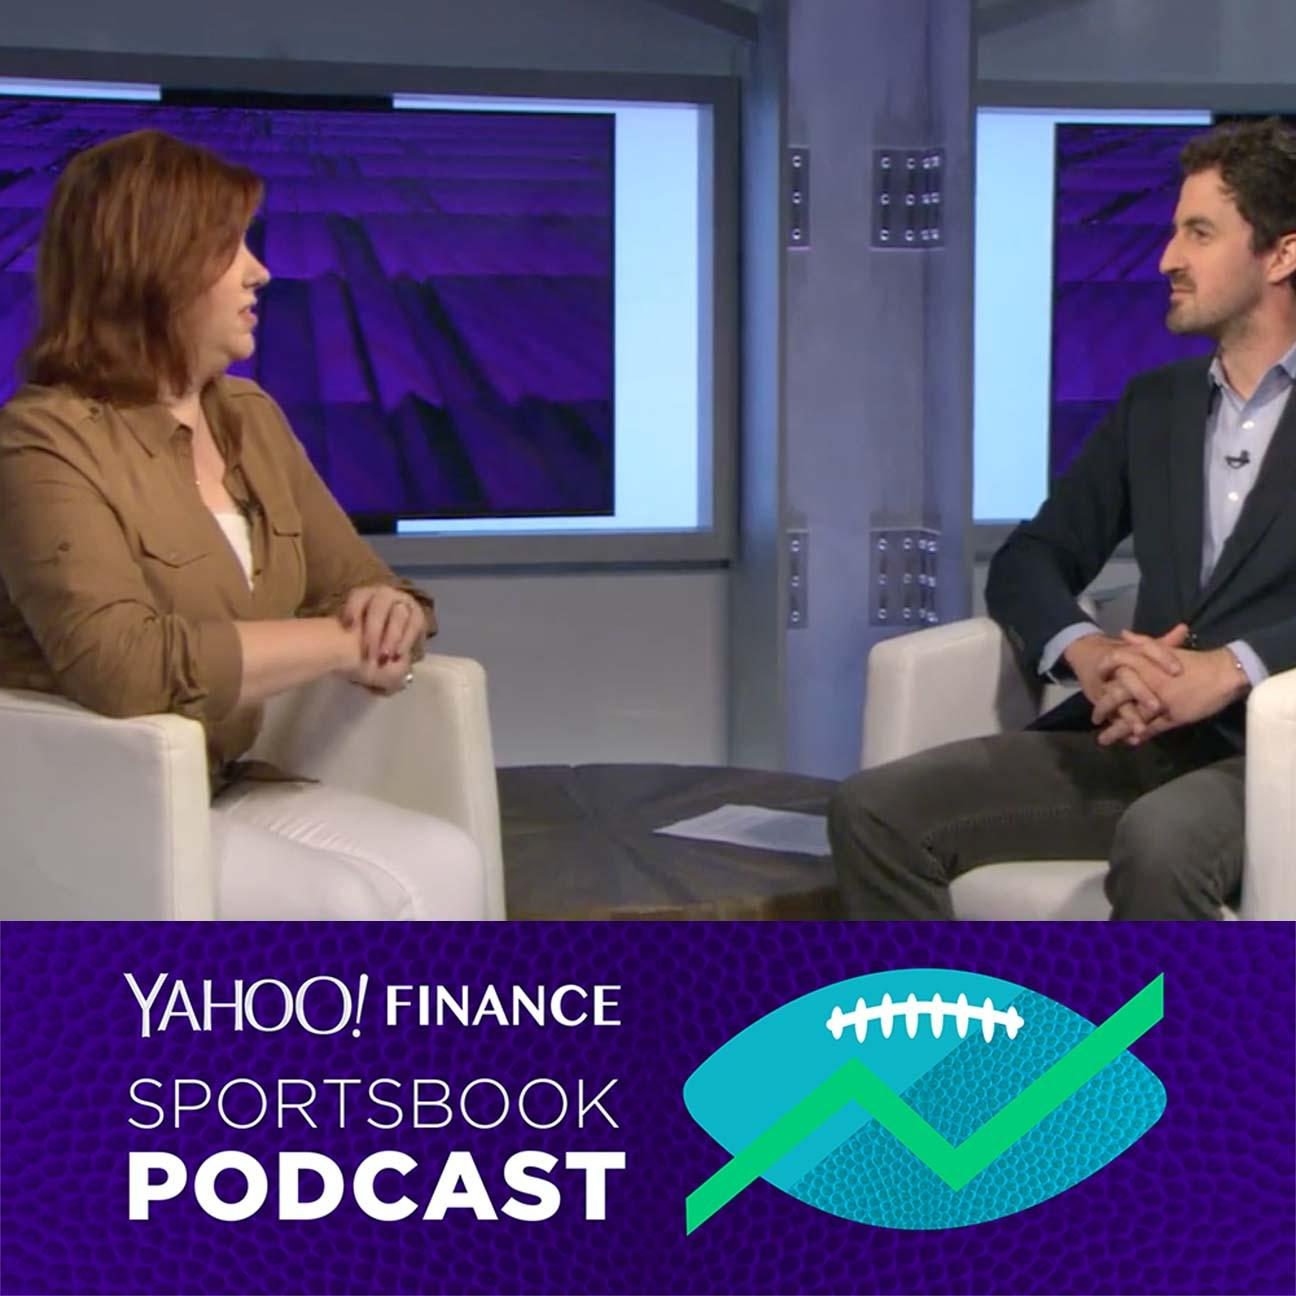 Yahoo Quote: NFL Scandals Won't Drive Away League Sponsors